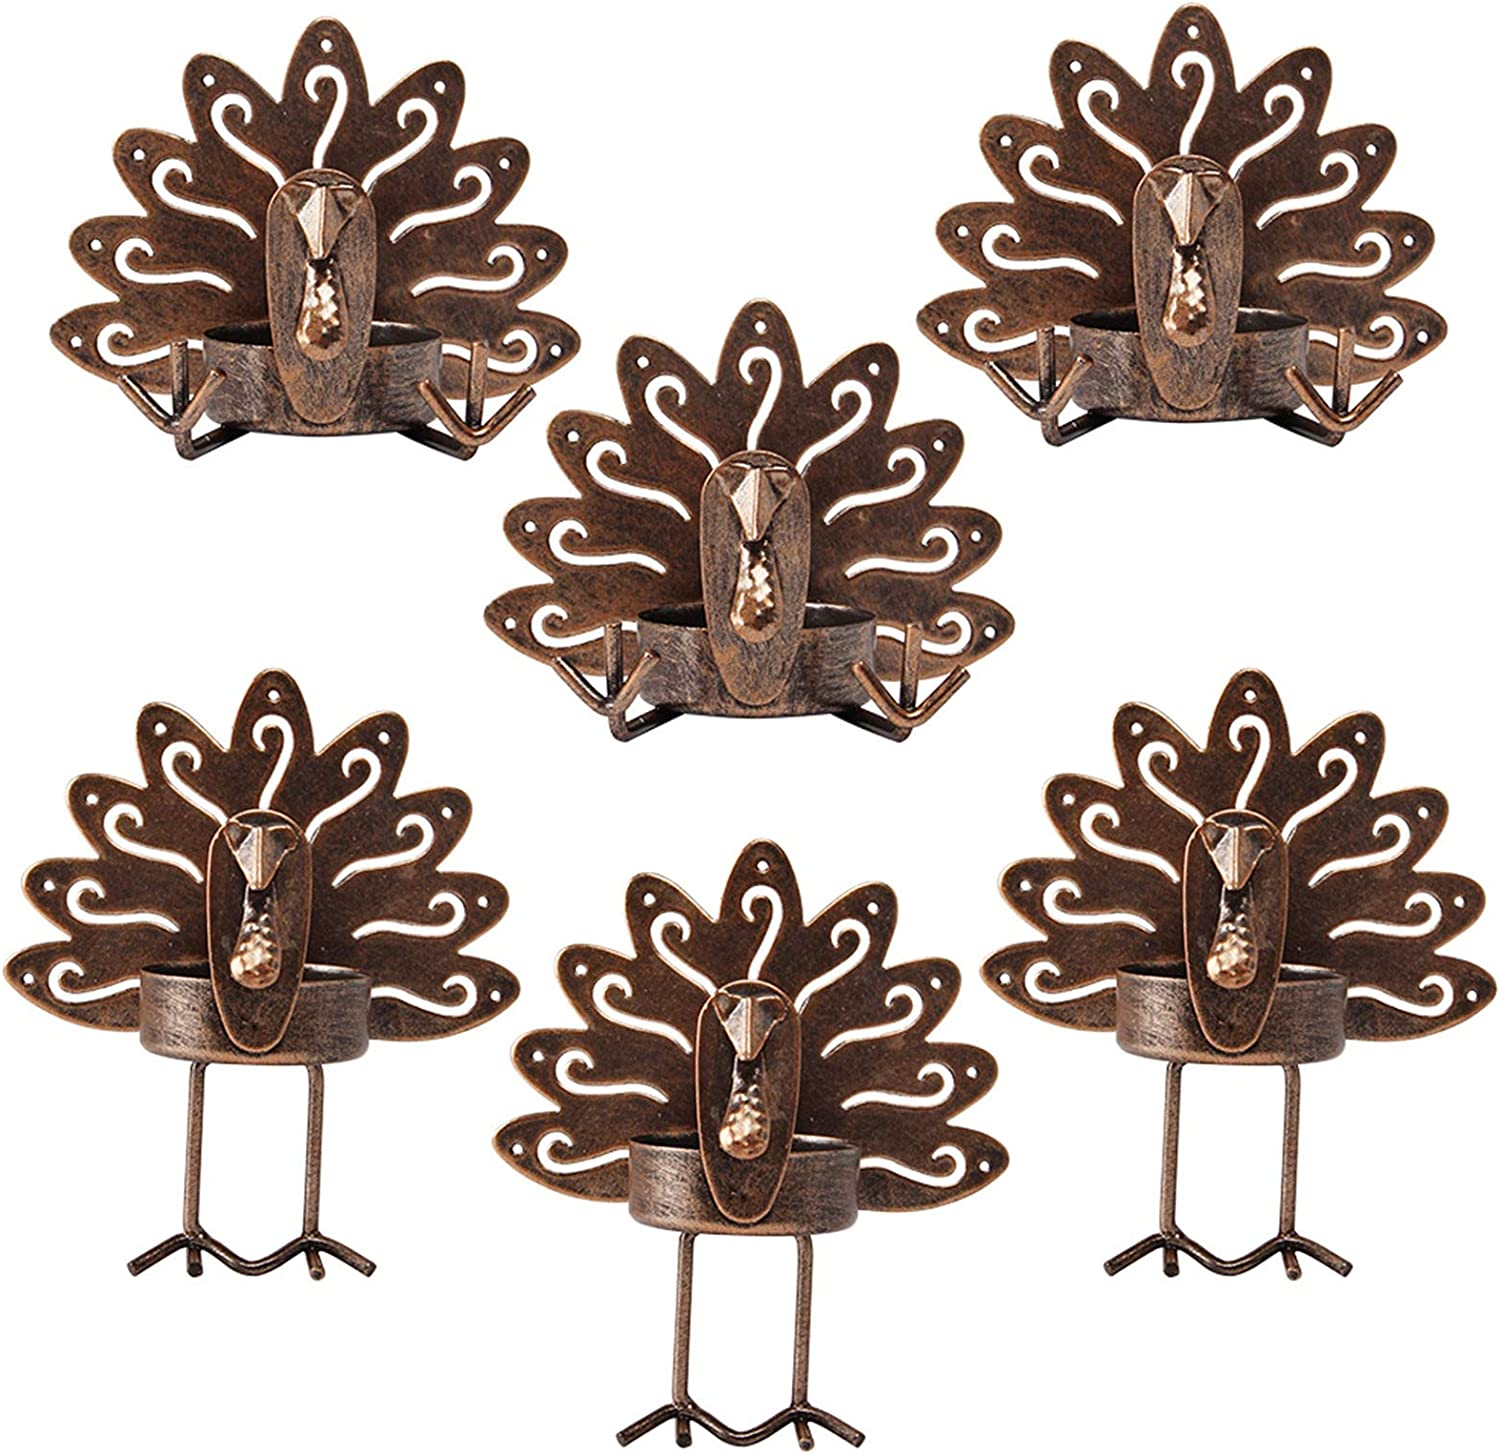 yosager Turkey Tea Light Candle Holders Metal, Thanksgiving Decoration Tealight Holder Set of 6, Rustic Decor Best for Thanksgiving Day Holiday Tabletop Home Decoration